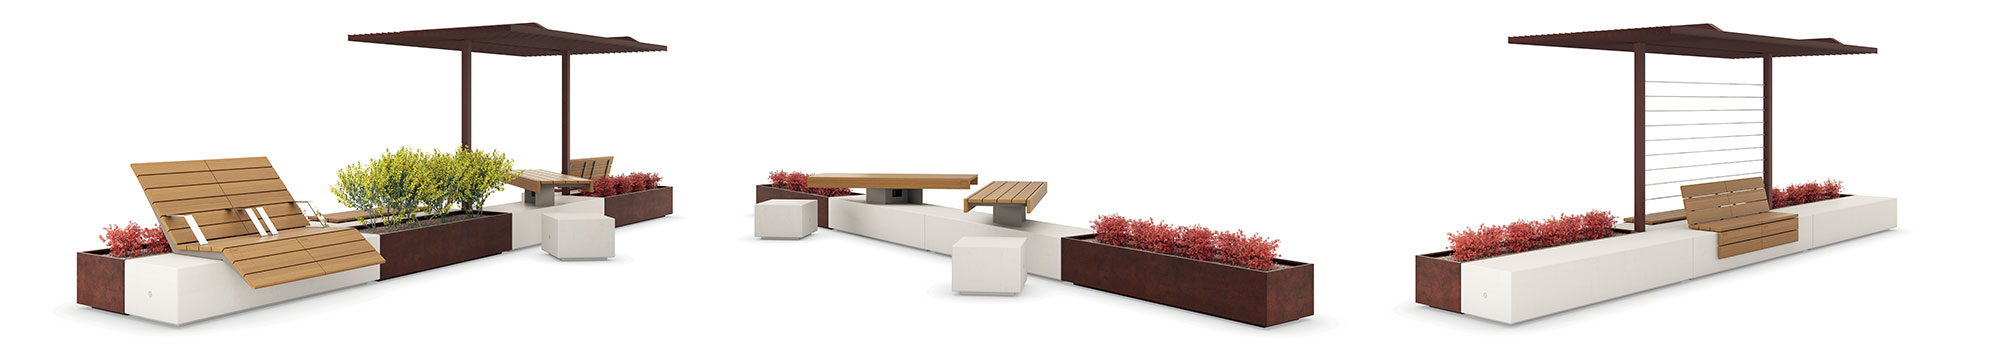 Alterego  Street Furniture Specifi London